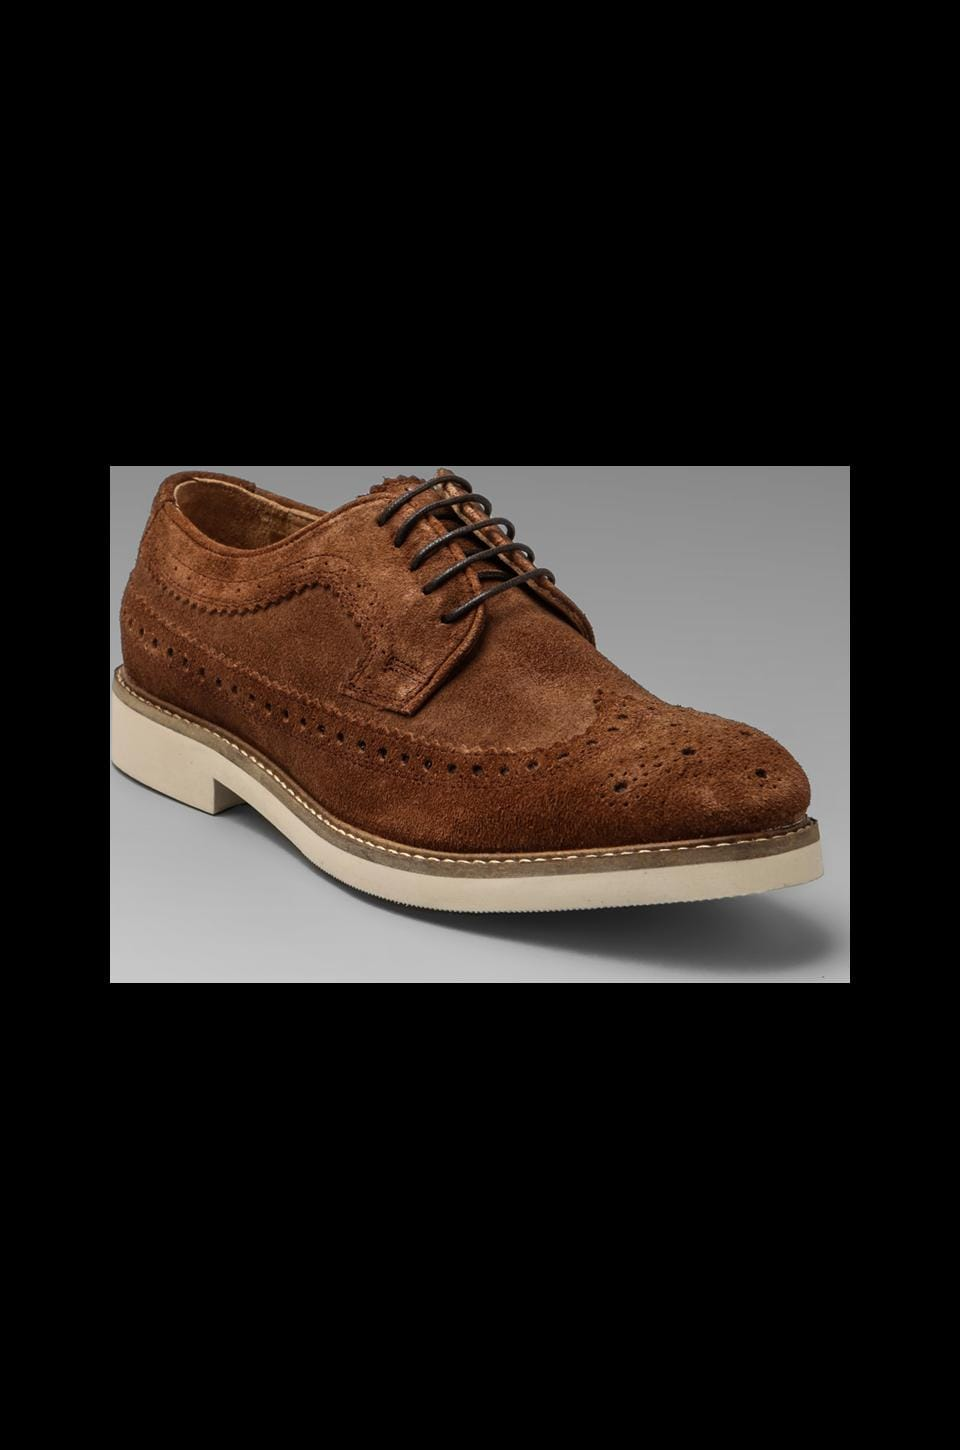 H by Hudson Crawford Sued Oxford in Brown